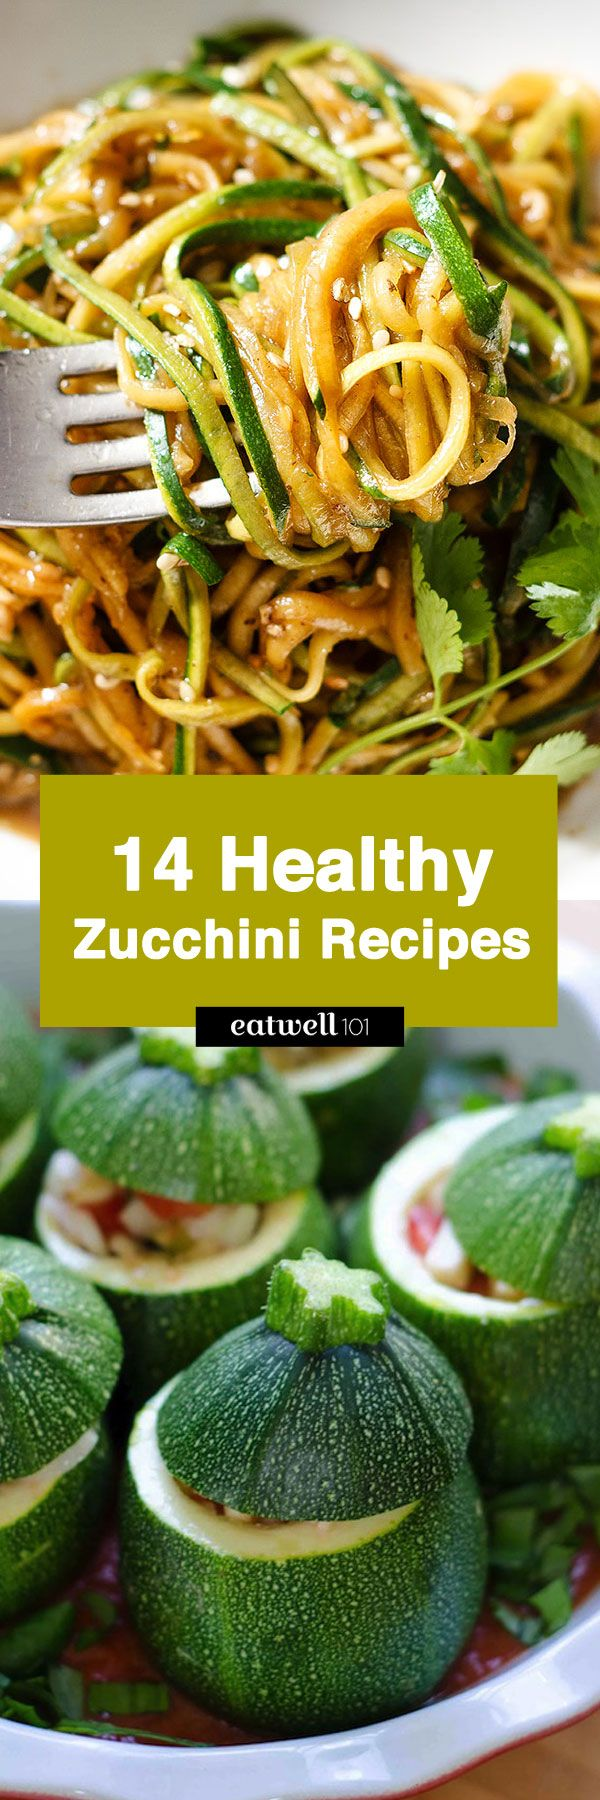 Use up all those zucchinis from your farmer's market, or CSA delivery (or lingering in your garden) with these easy, healthy zucchini recipes – full of nutrients and flavor! From spiralized z…